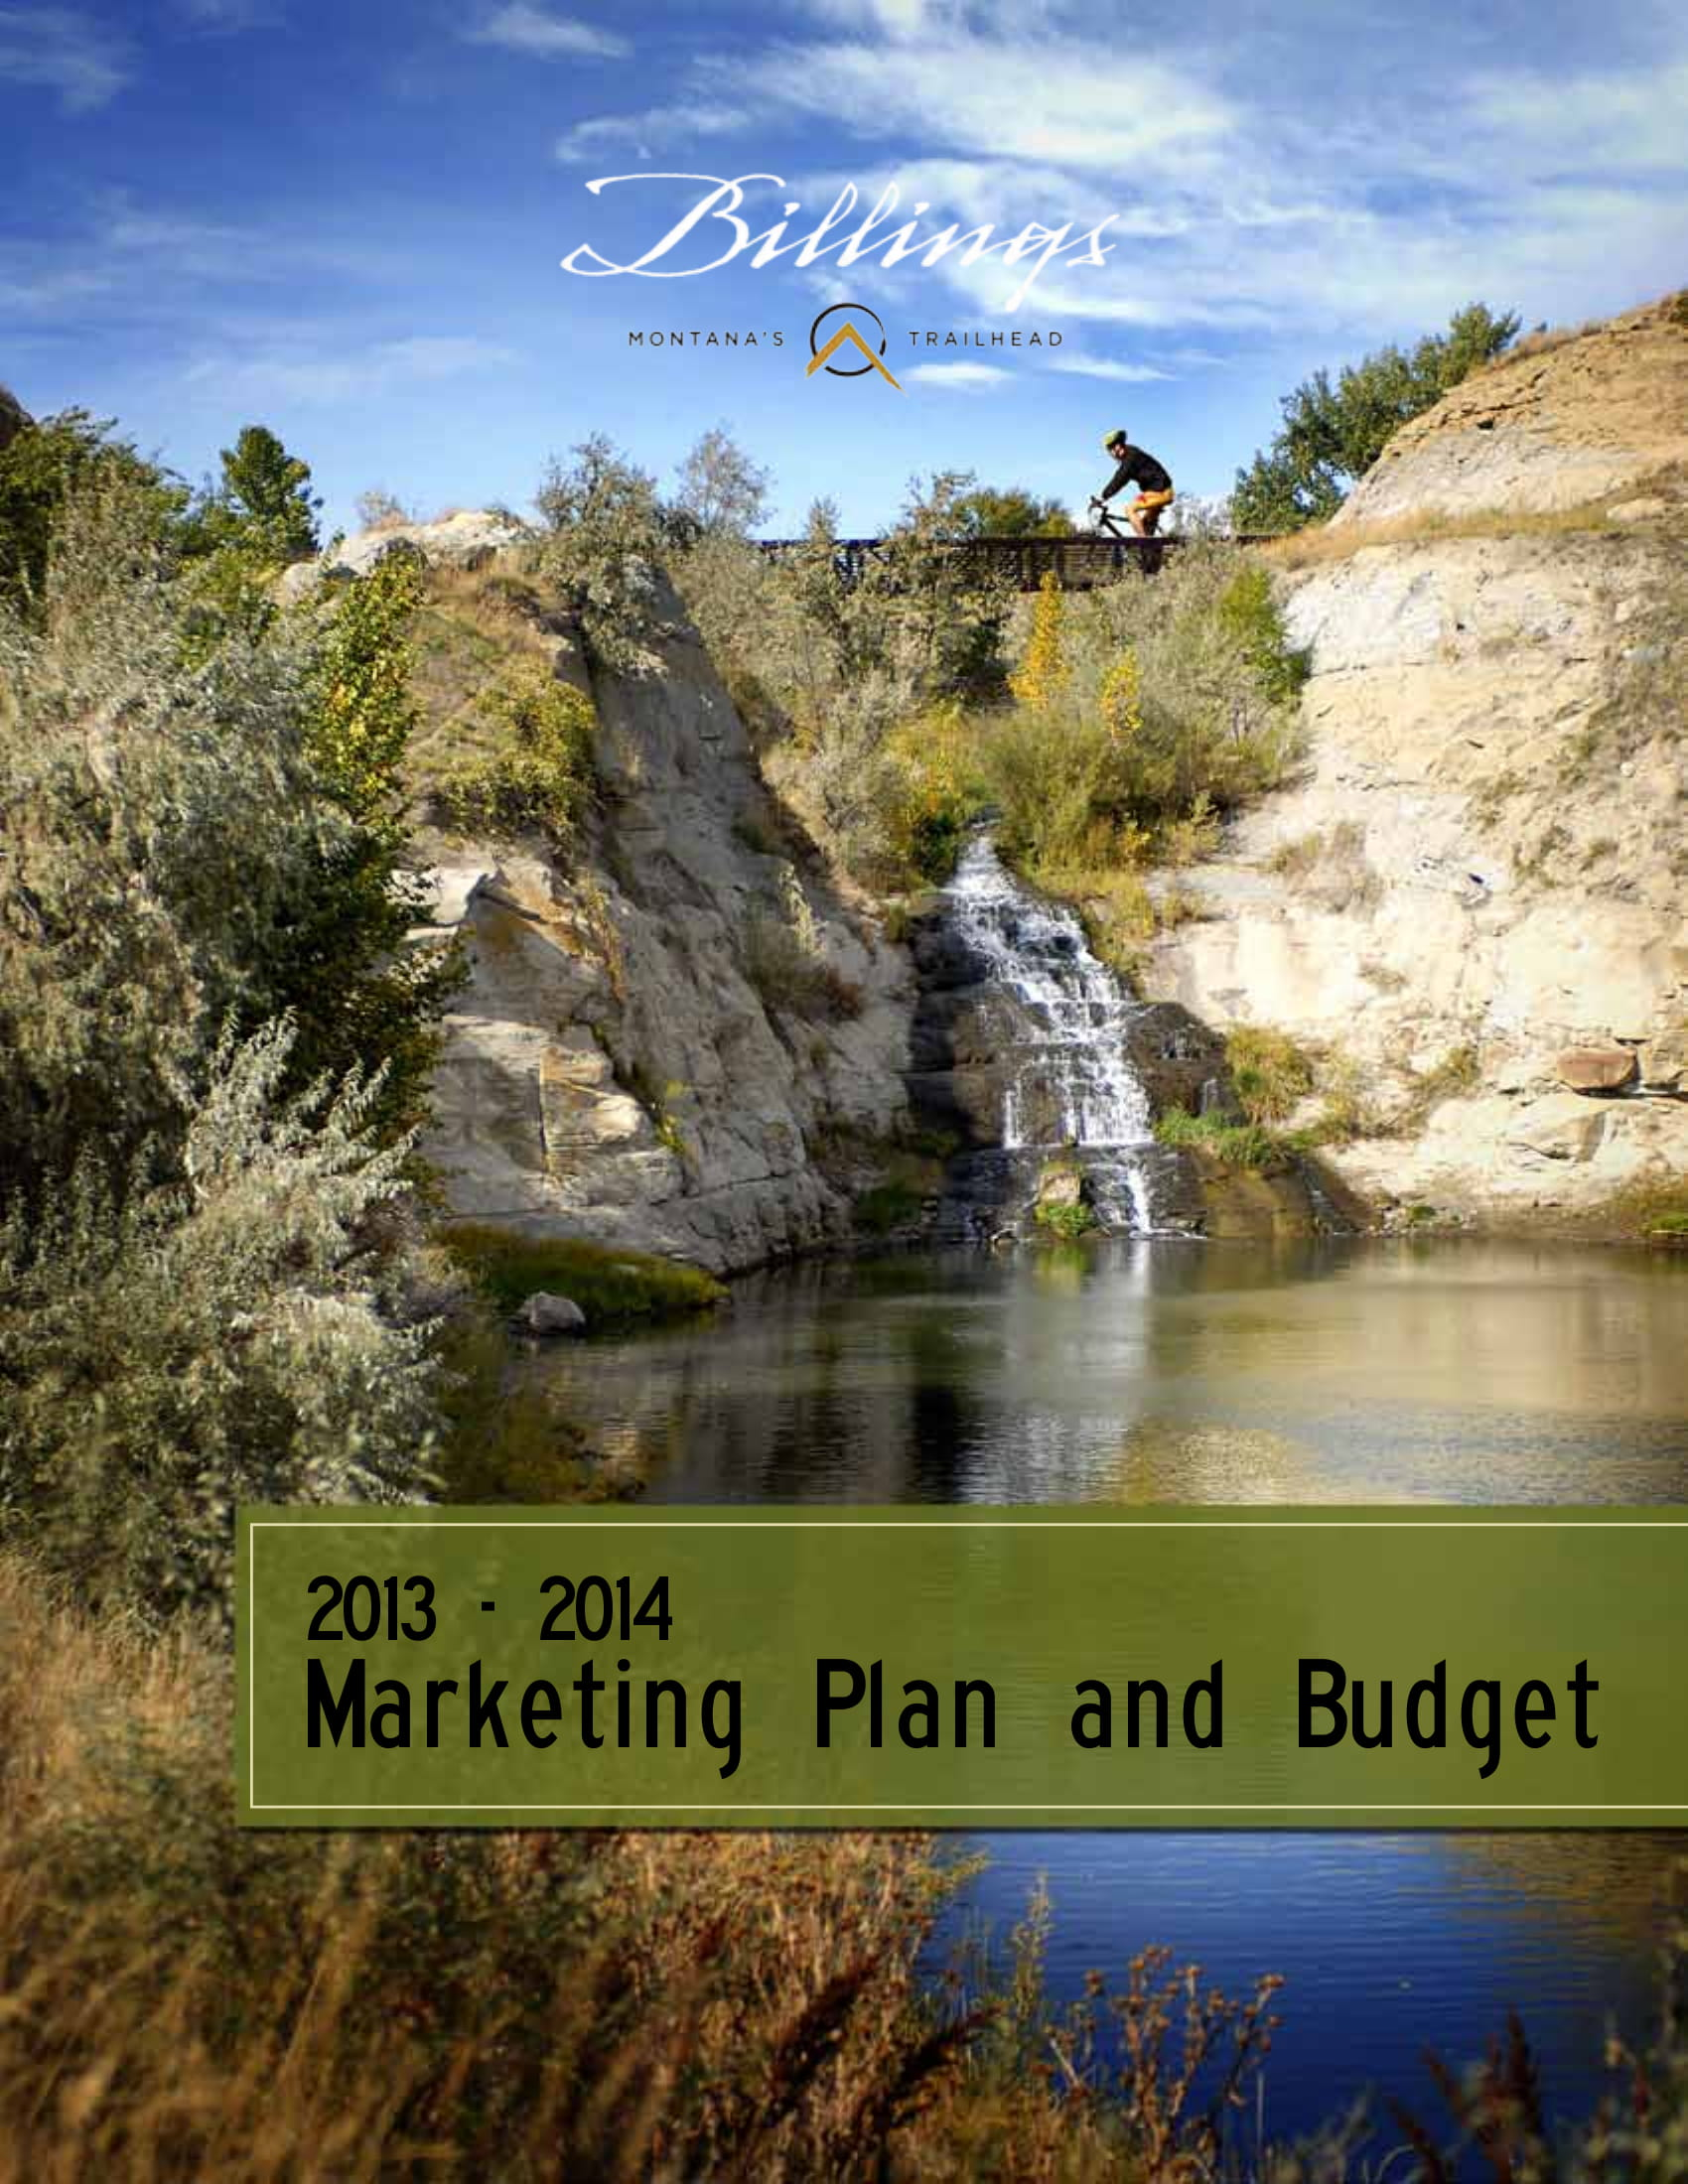 marketing plan and budget for a project example 011